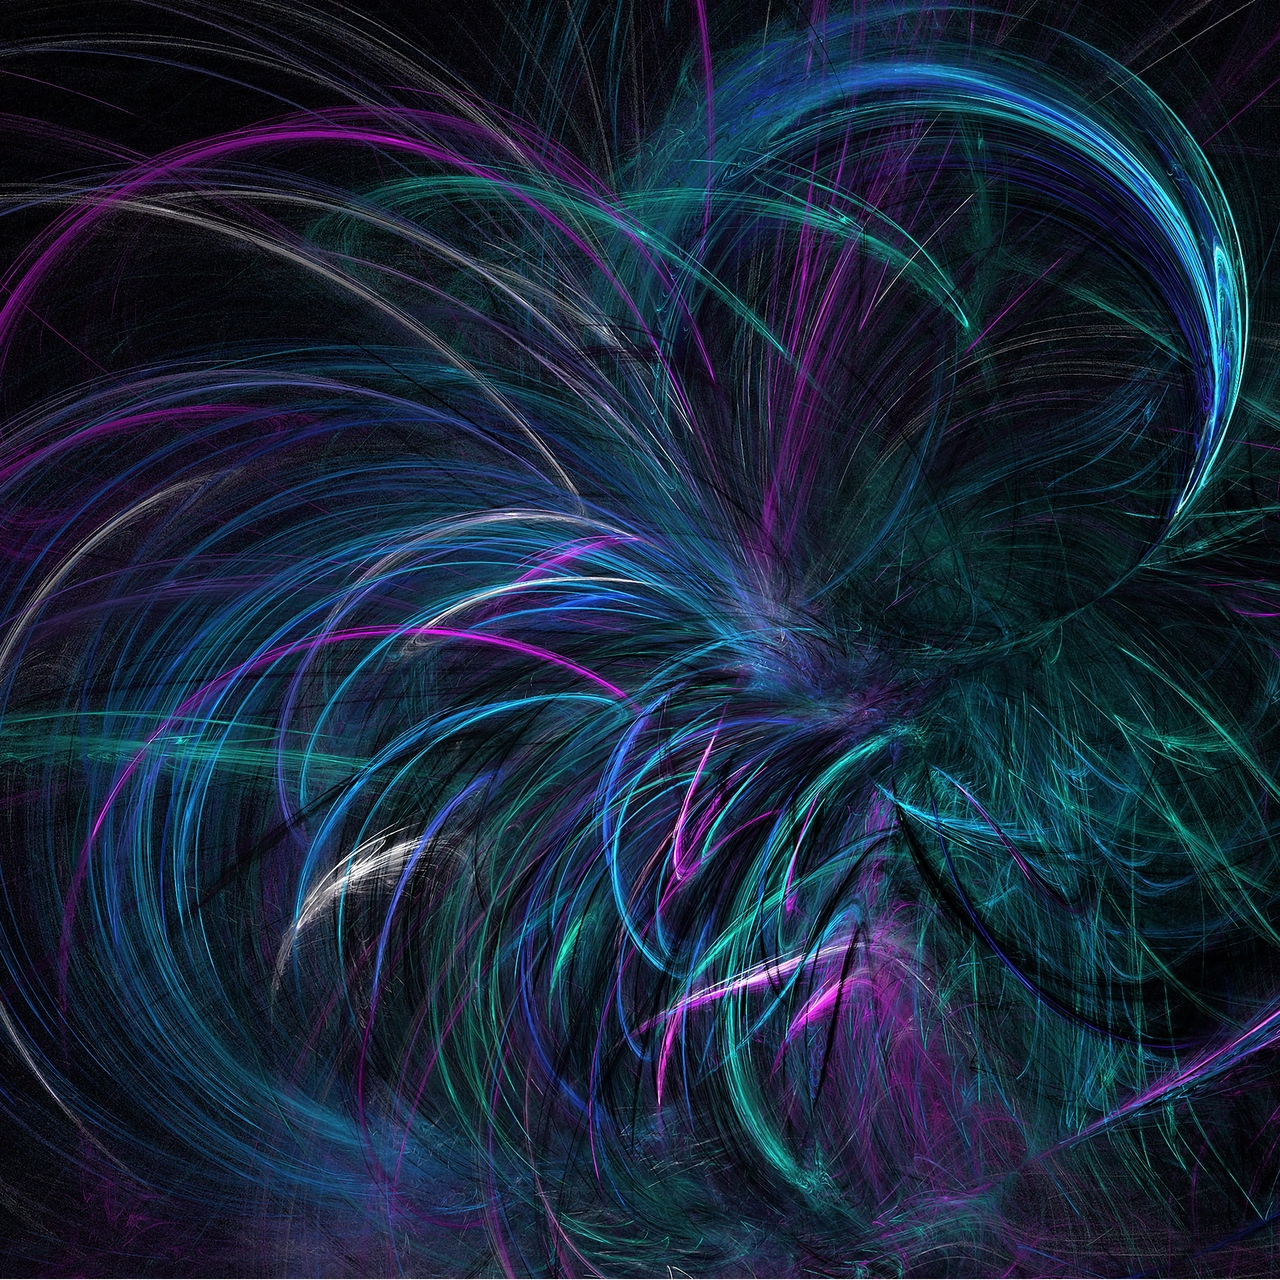 Download wallpaper 1280x1280 fractal lines dark violet twisted 1280x1280